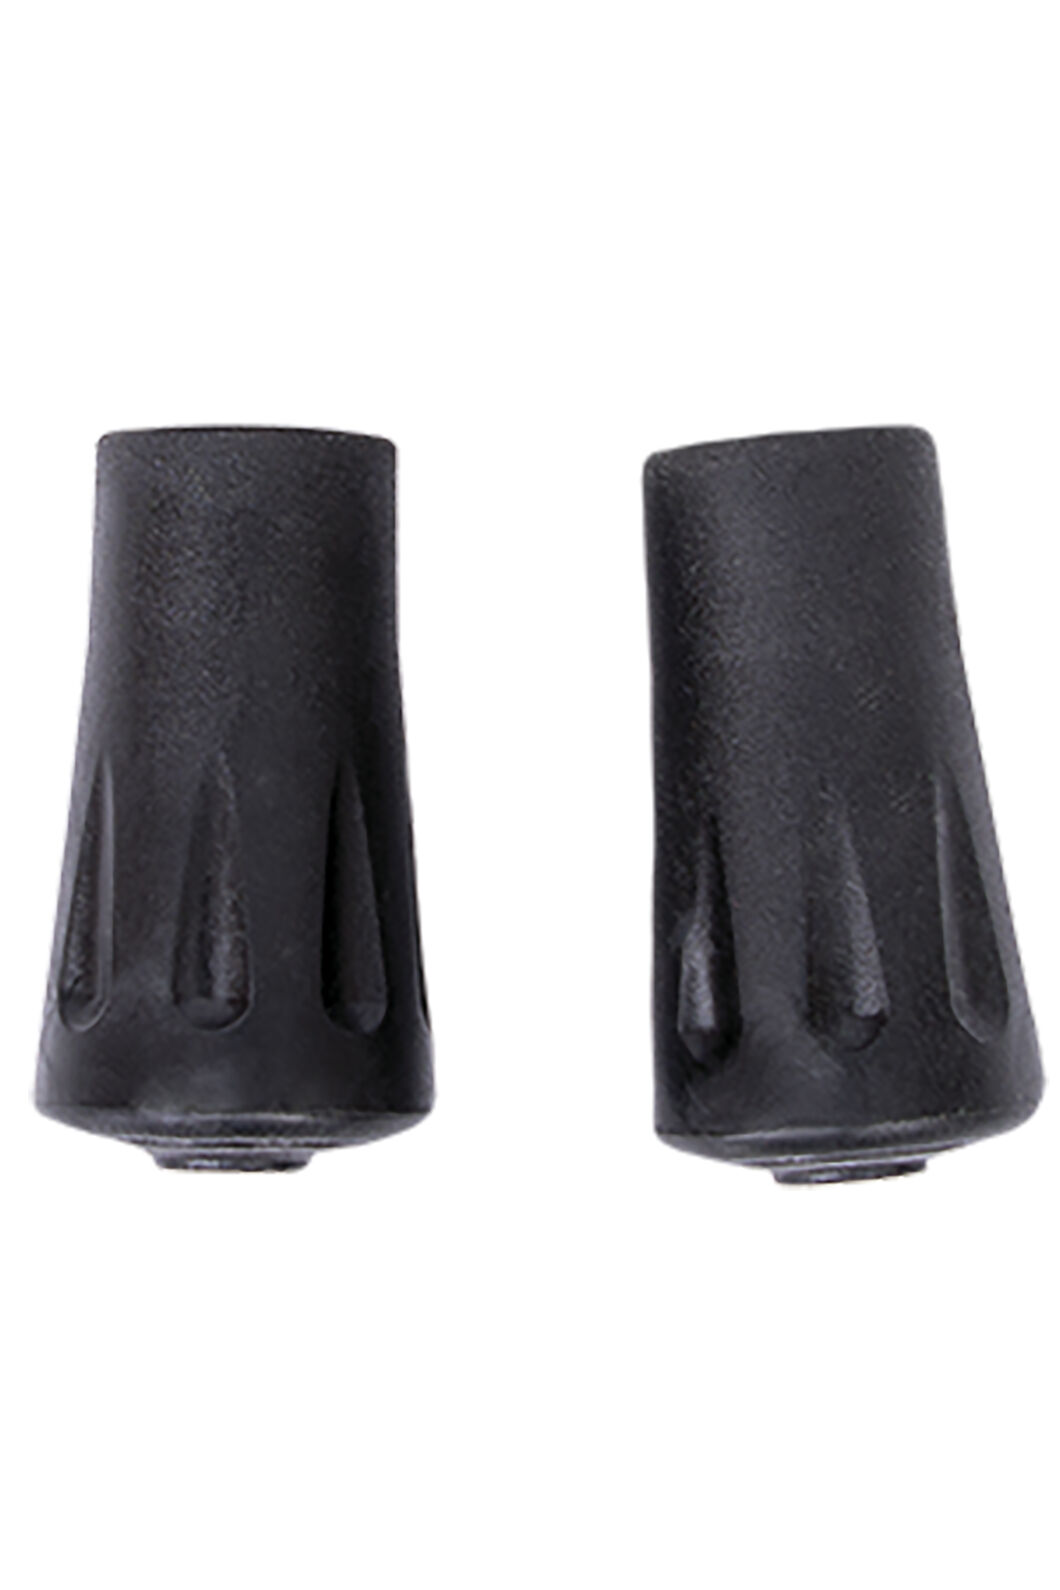 Macpac Replacement Walking Pole Tips, None, hi-res